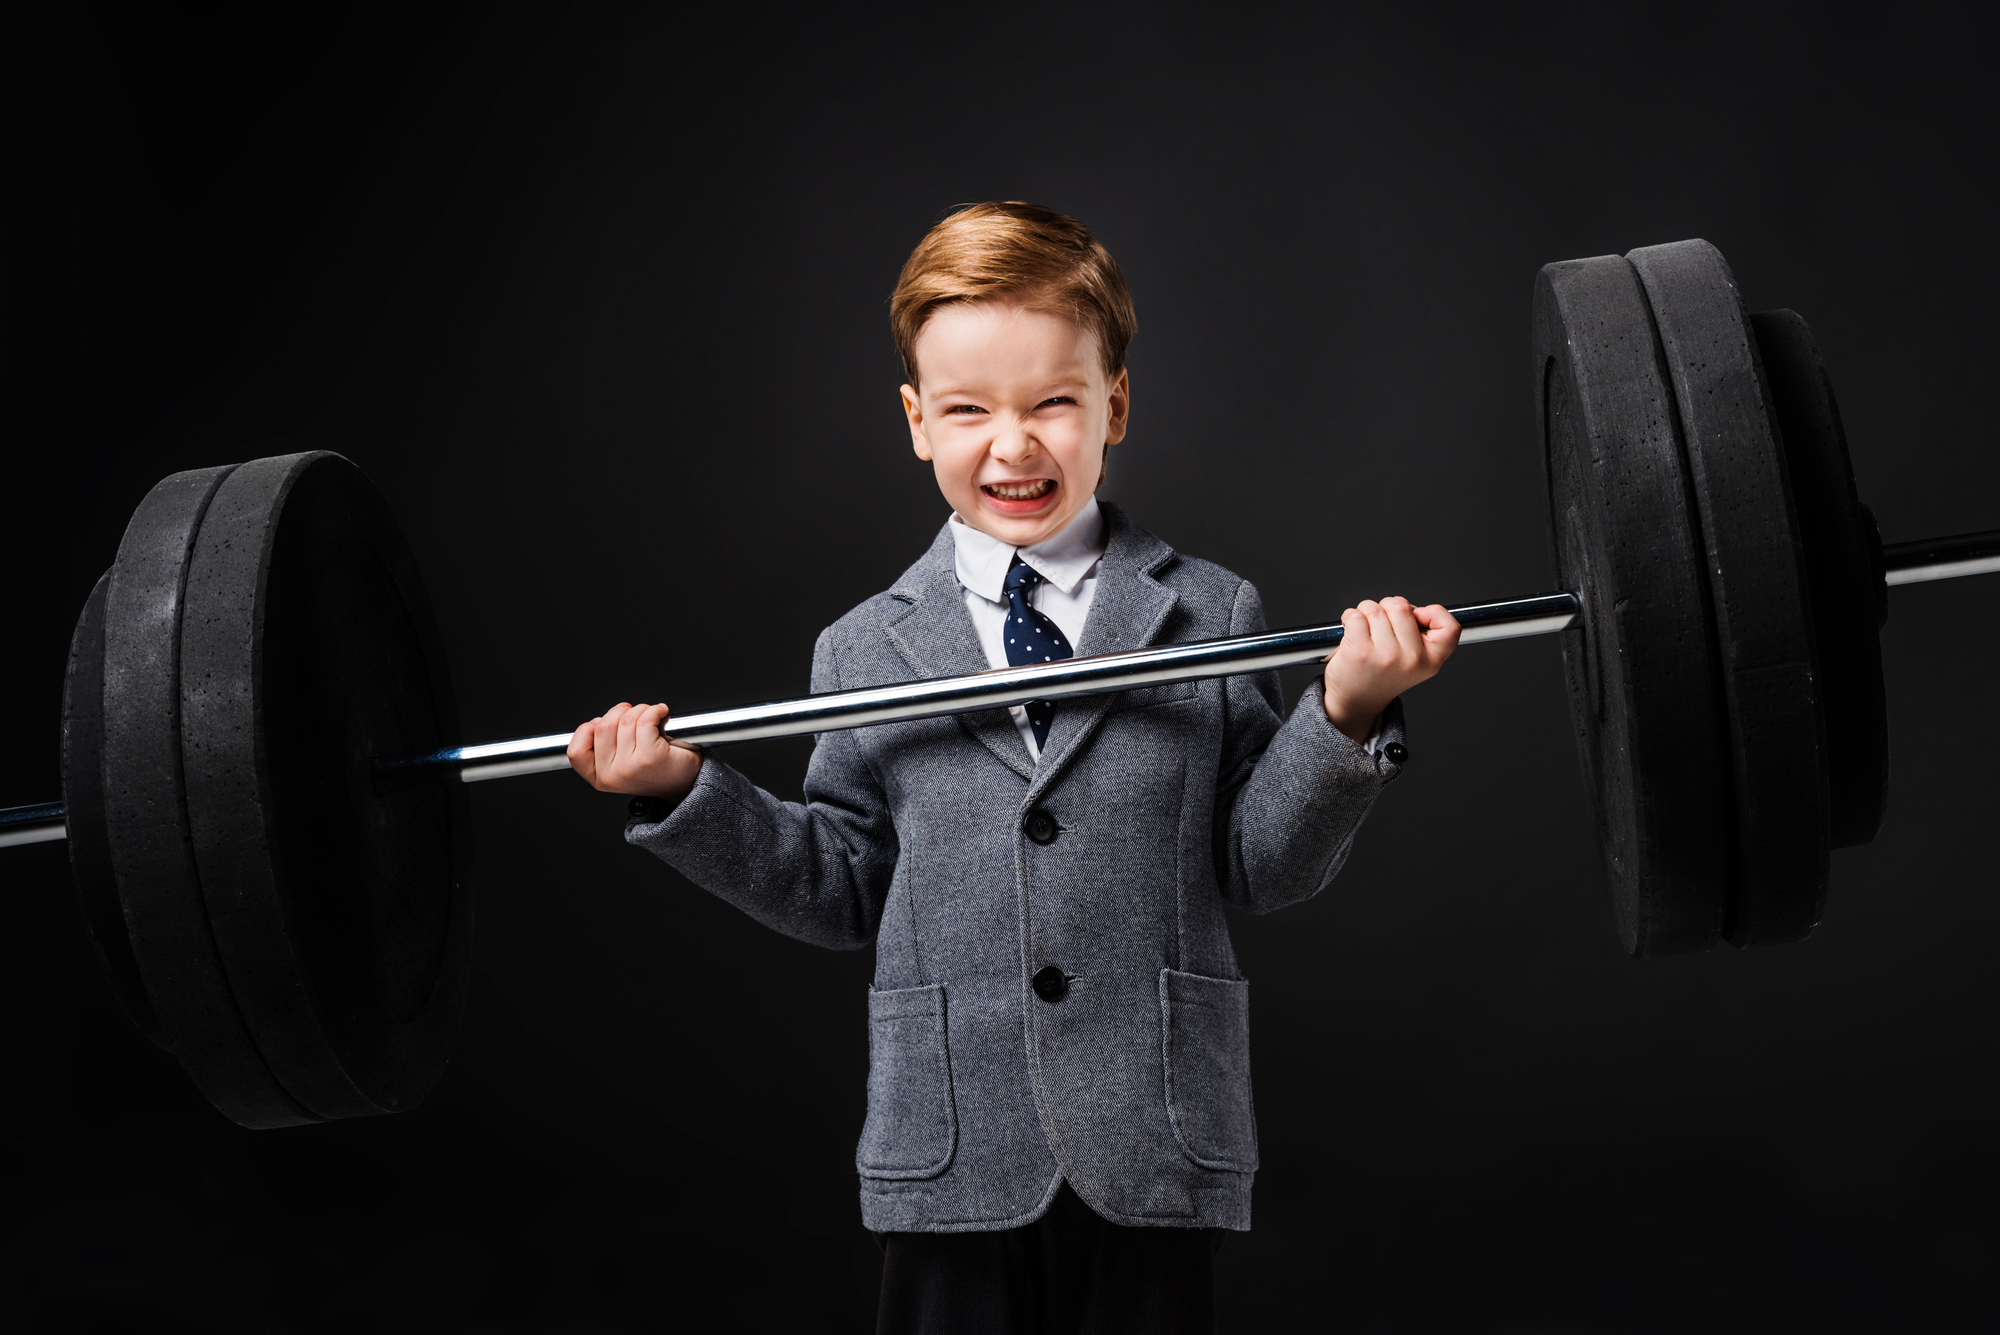 12-year-old lifting weight stunt